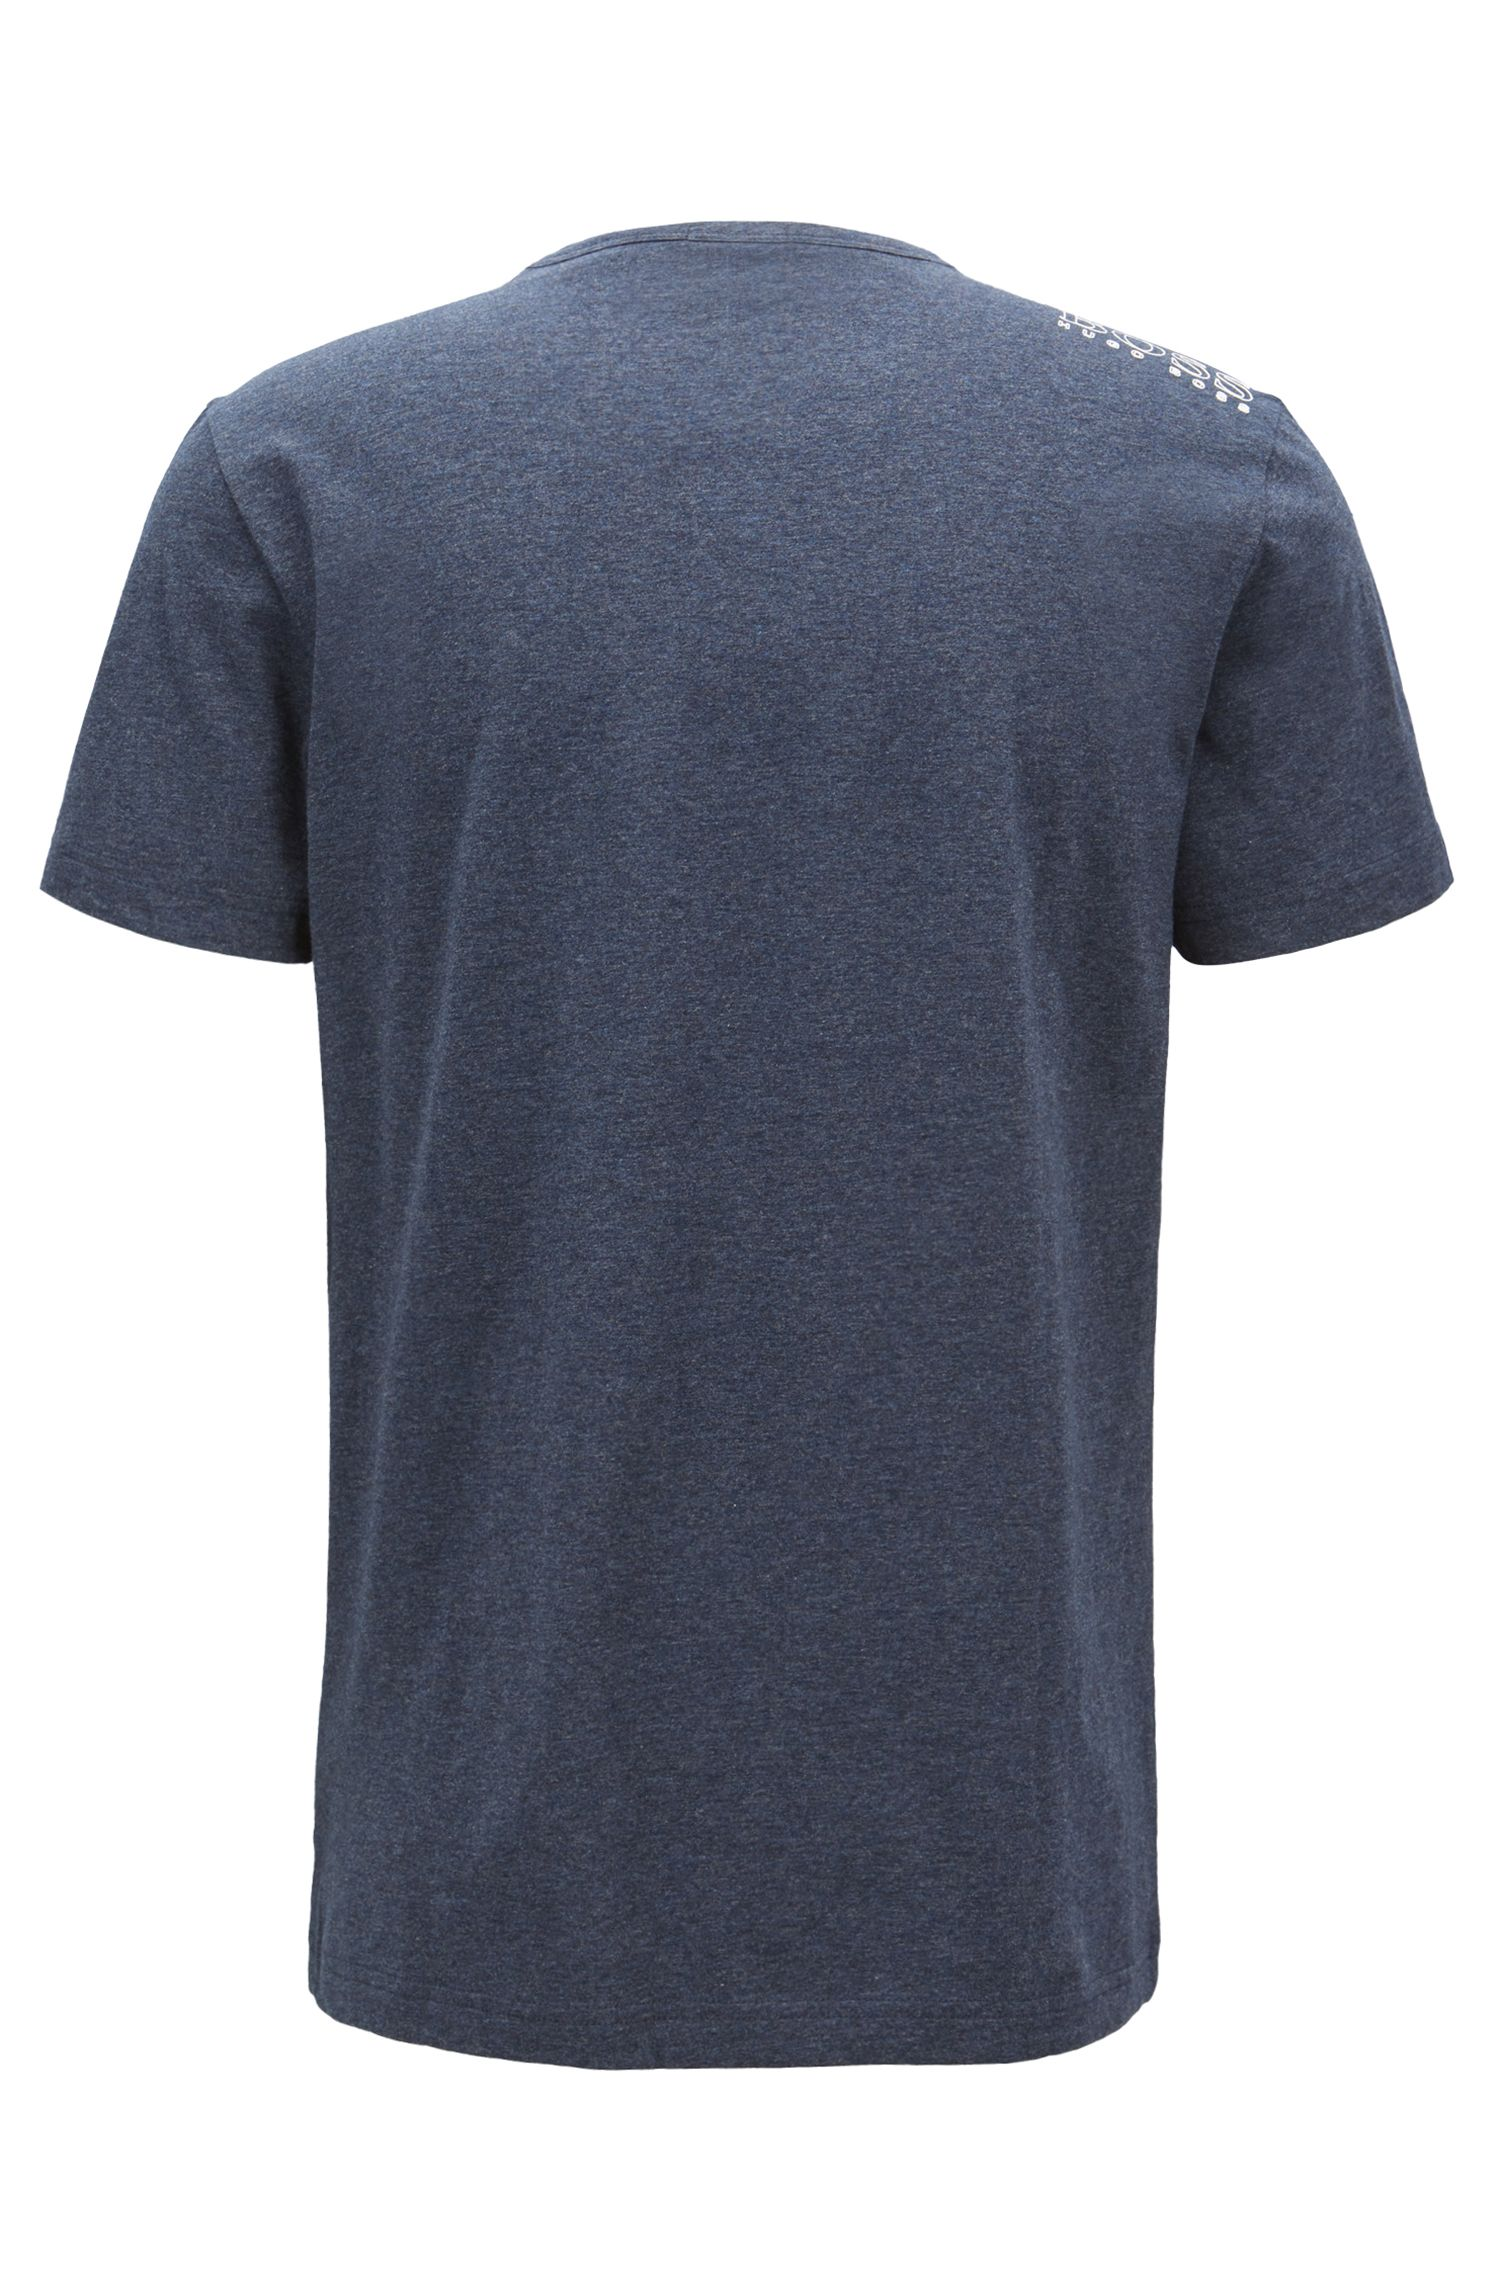 Regular-Fit T-Shirt aus Single Jersey, Dunkelblau